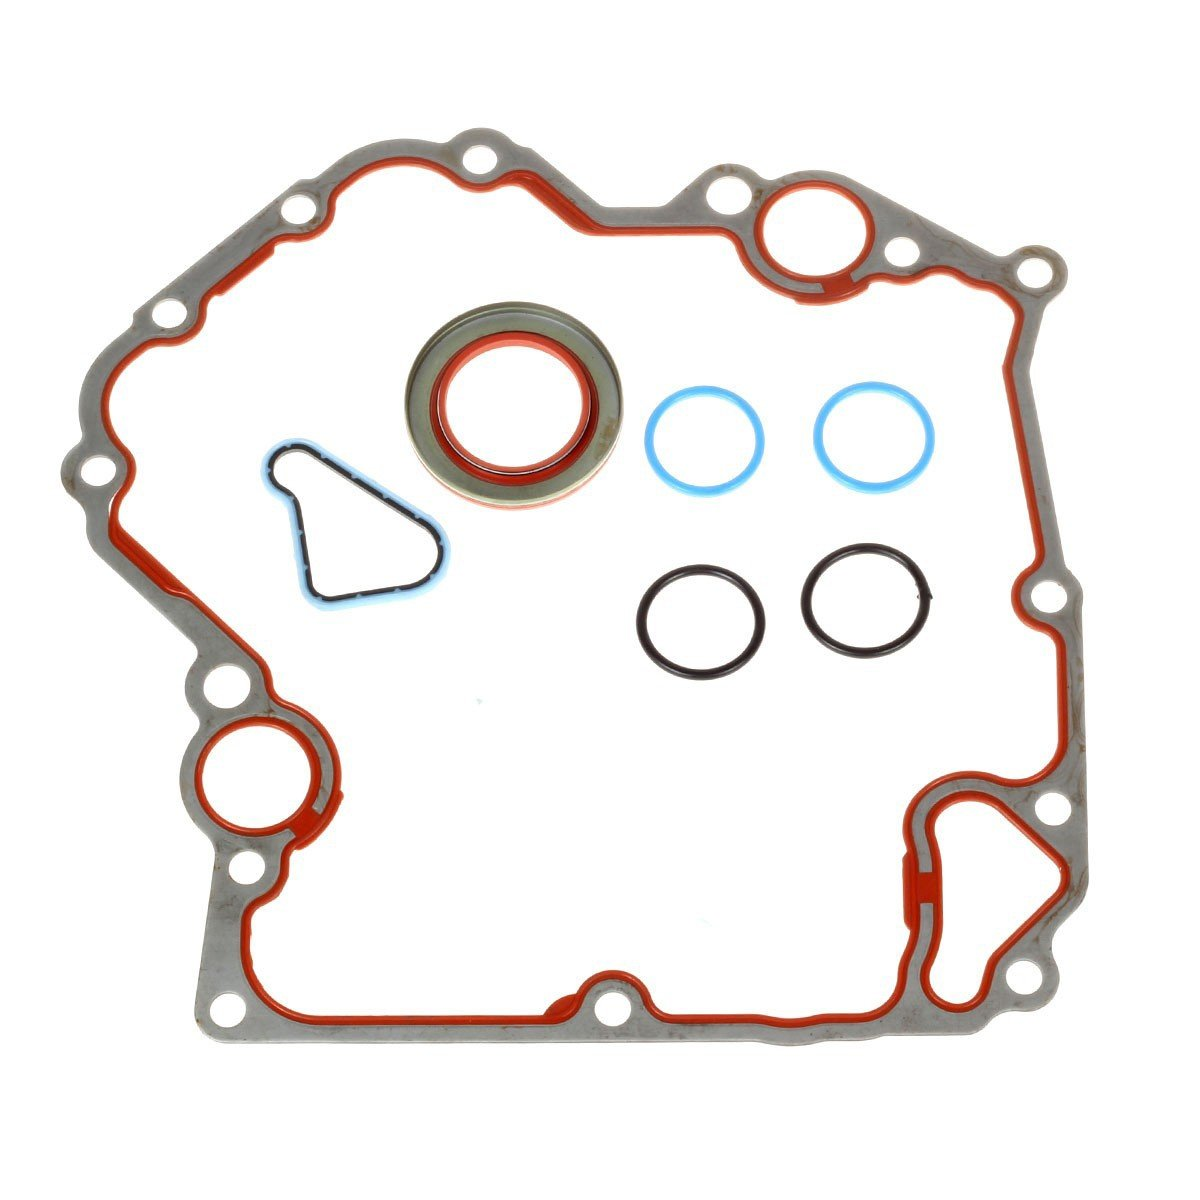 Timing Cover Gasket Kit TCS46000 Fits for 1999-2009 Dodge Jeep Mitsubishi 3.7L 4.7L, for 2006-2007 Mitsubishi Raider 4.7L Vin N, for 2004-2009 Dodge Dakota 3.7L Vin Code K by Vincos